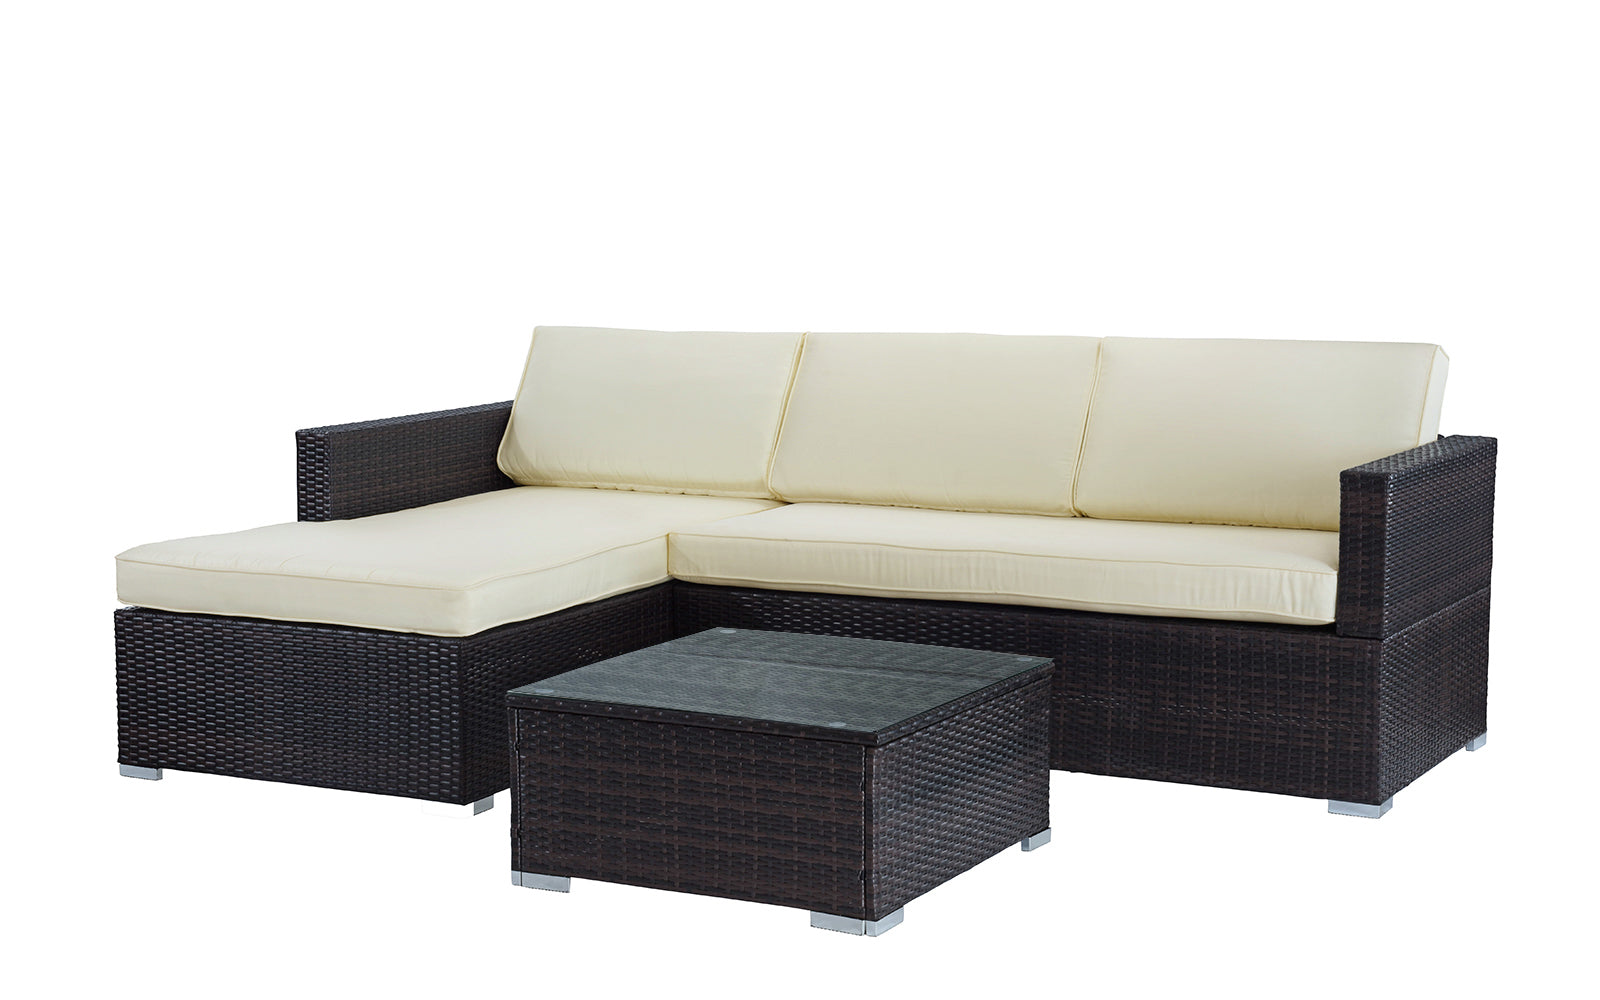 Genial Hilo Modern Outdoor Sectional With Coffee Table